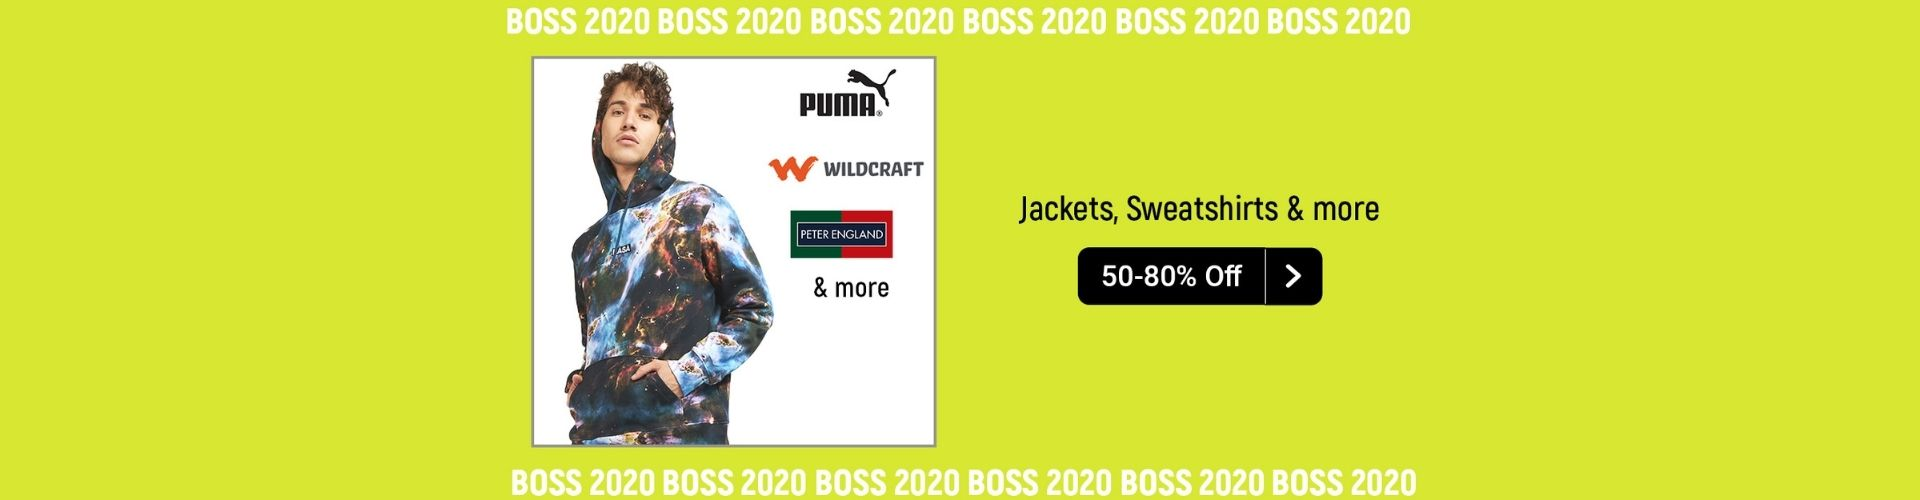 Jackets sweat shirts and more available at minimum 50% off